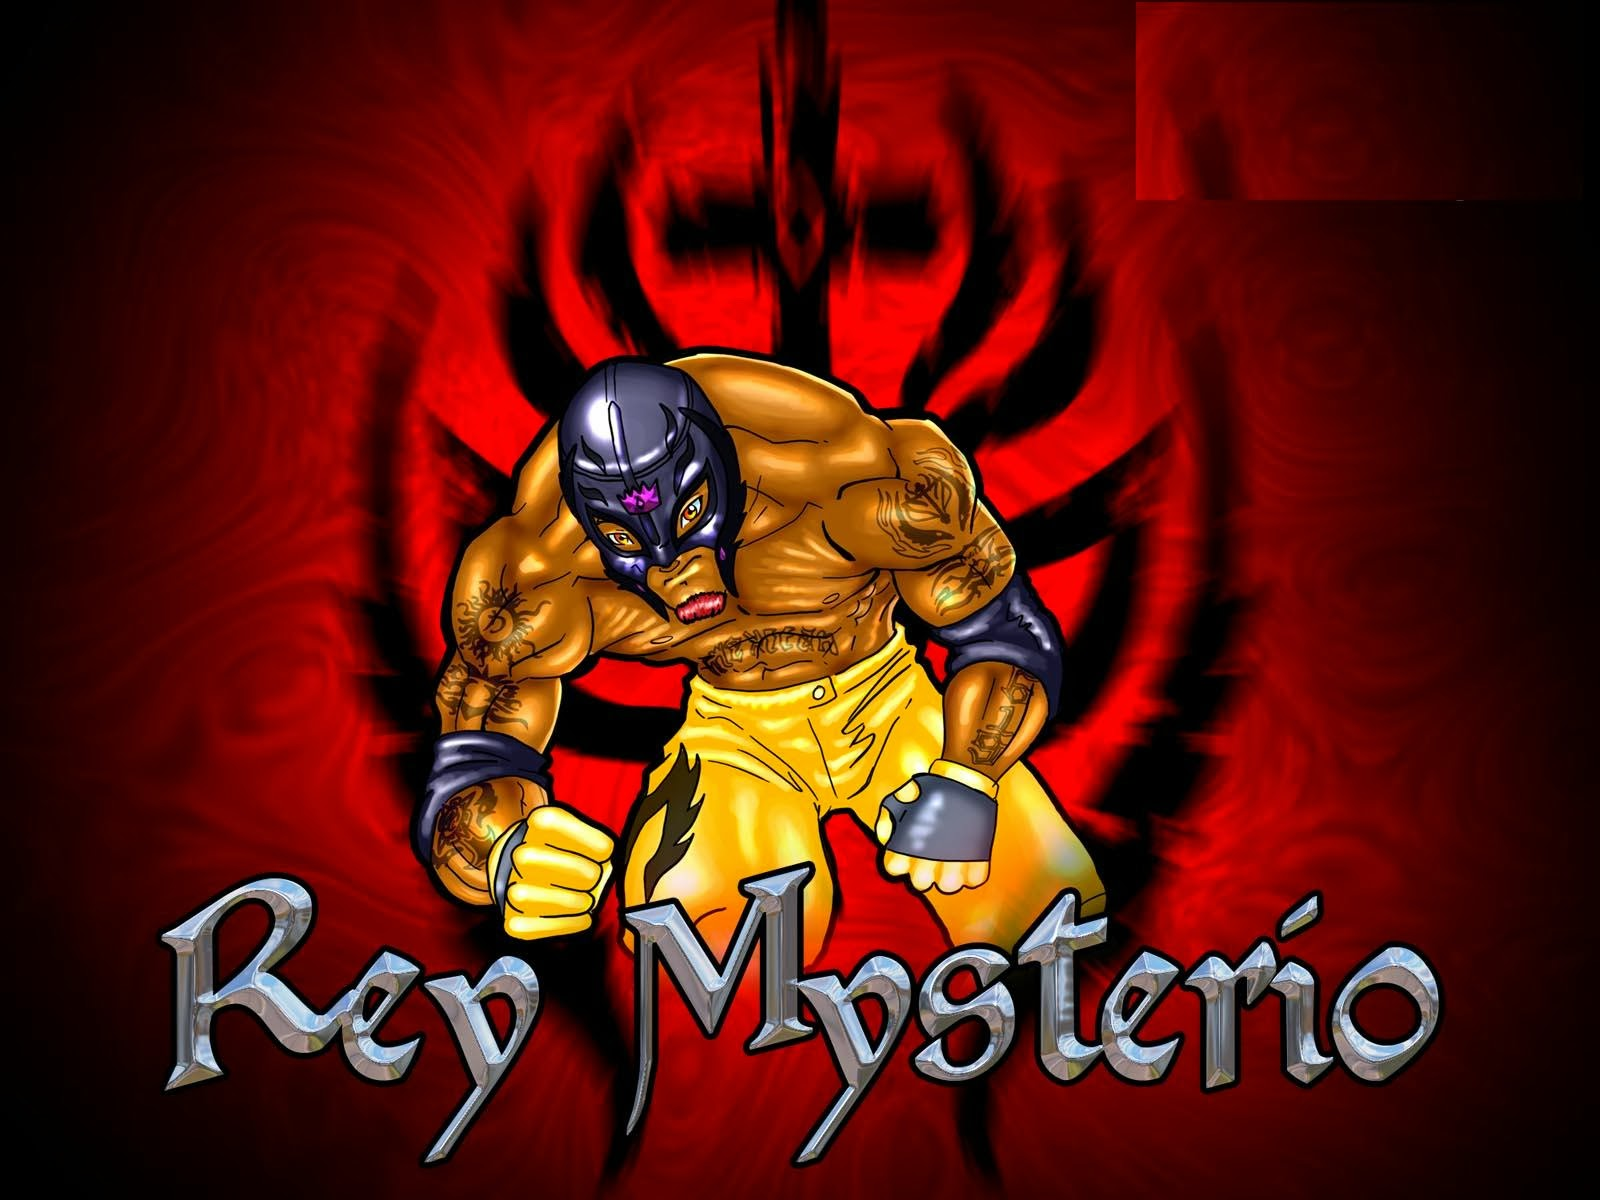 Download Ray Mysterio Wallpaper Gallery